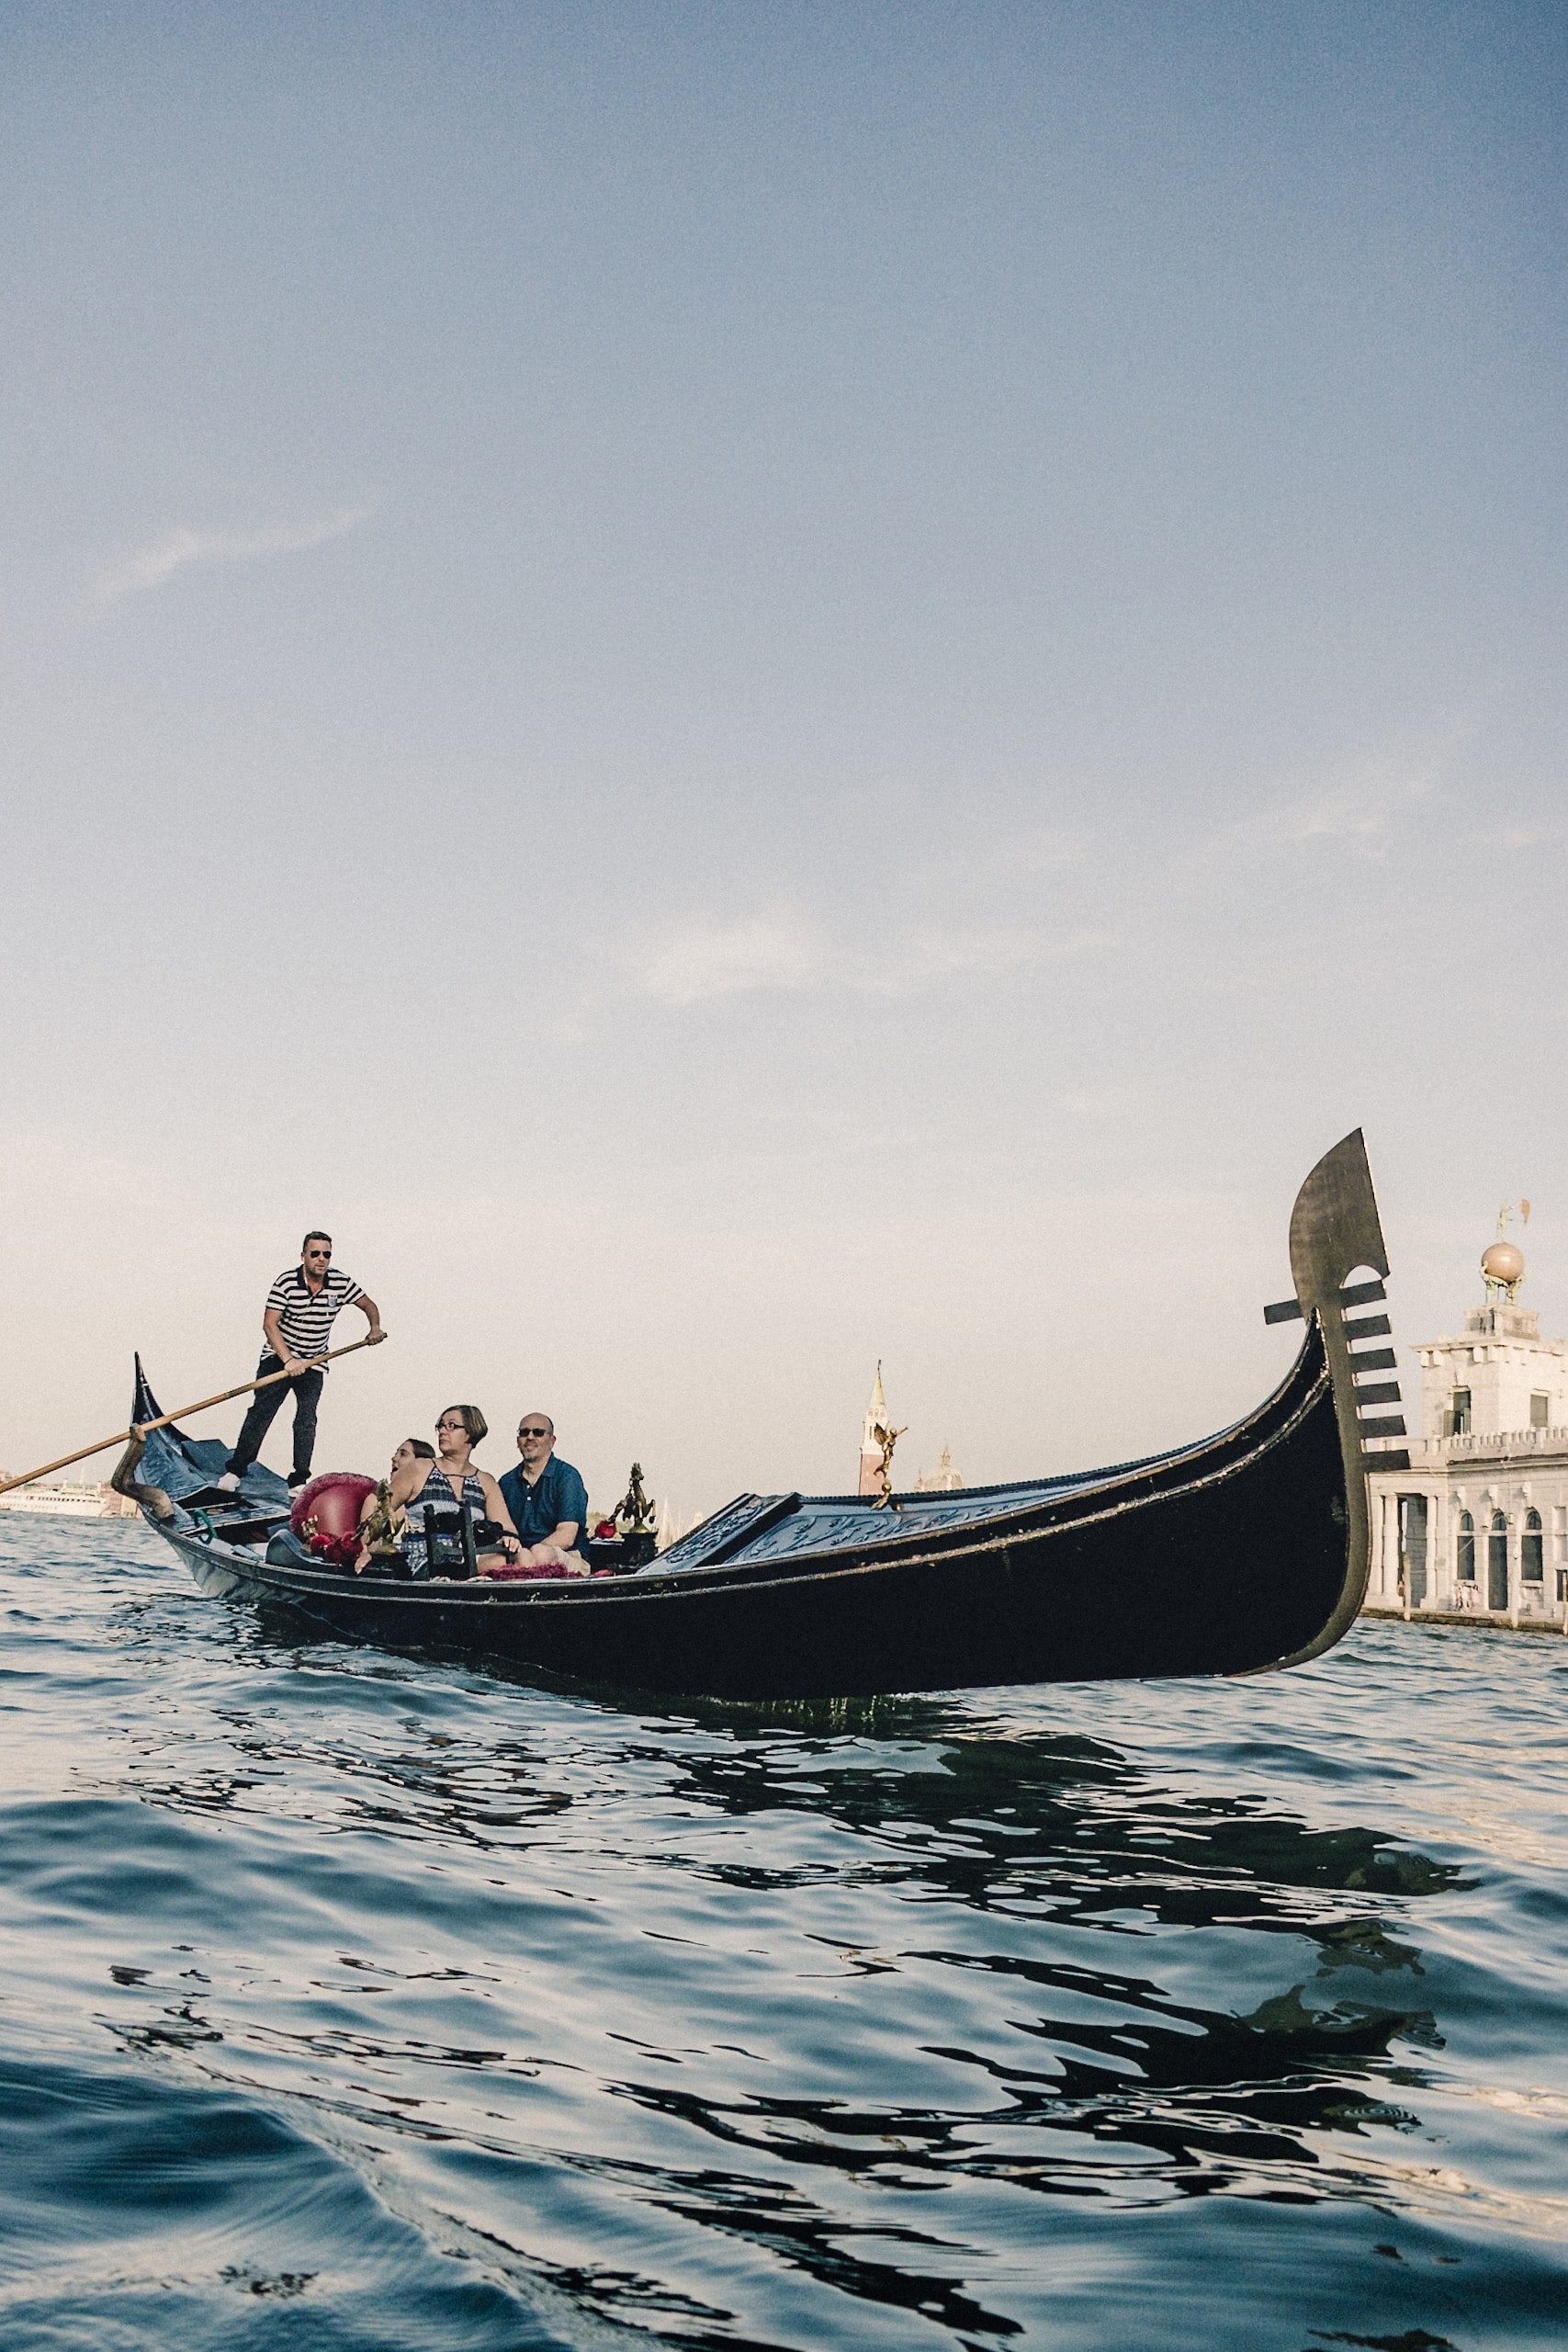 people riding boat on body of water